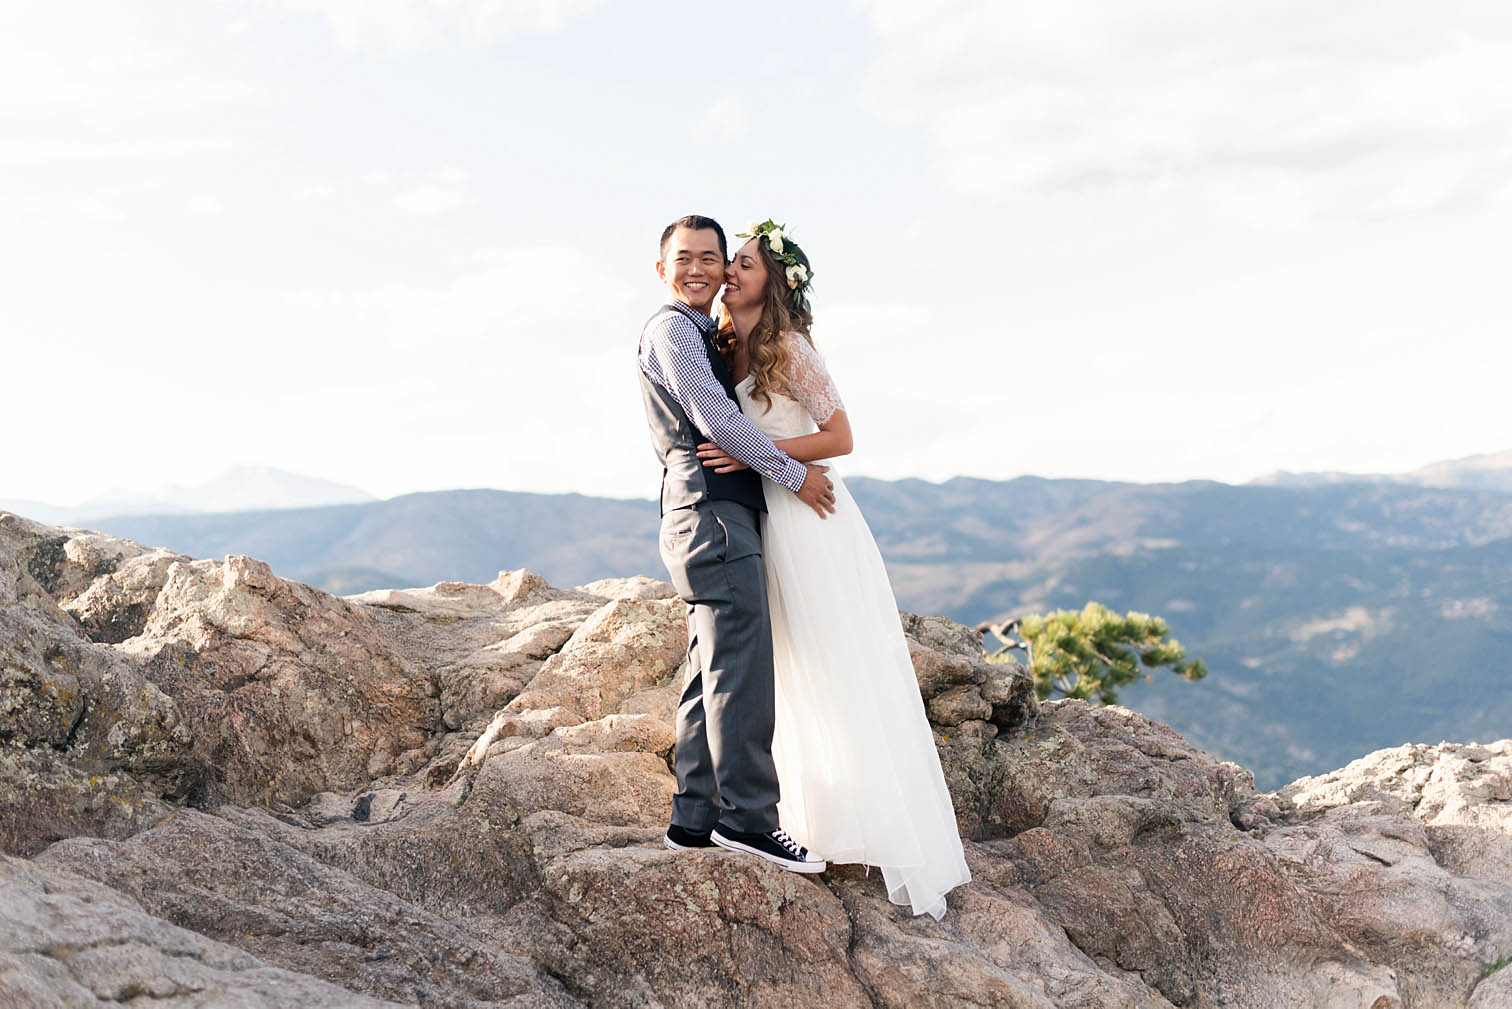 Bride Groom Colorado Mountain Top, Sunrise Amphitheater, Colorado Photographers, Best Destination Weddings